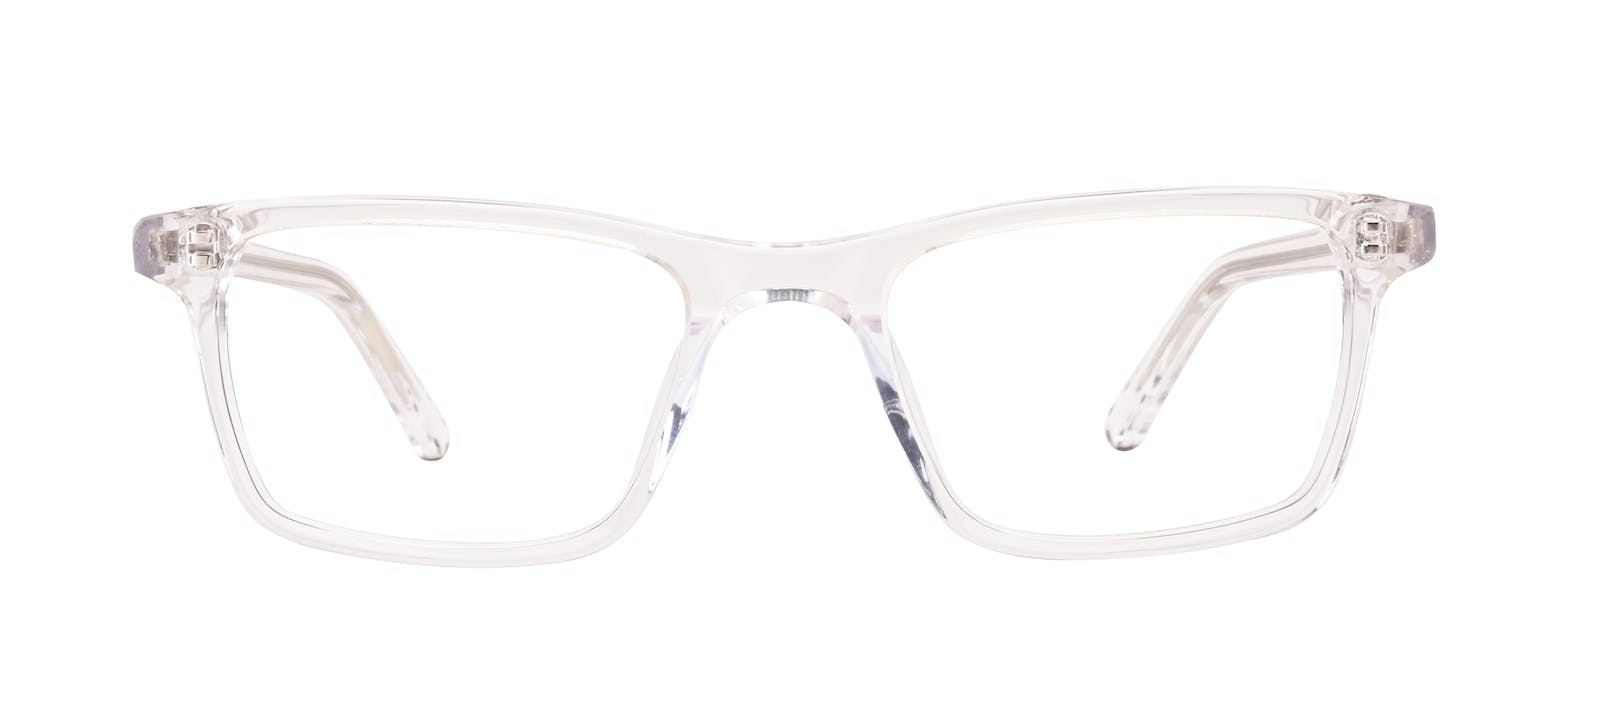 08ee1565c12 Affordable Fashion Glasses Rectangle Eyeglasses Men Henri SML Clear Front